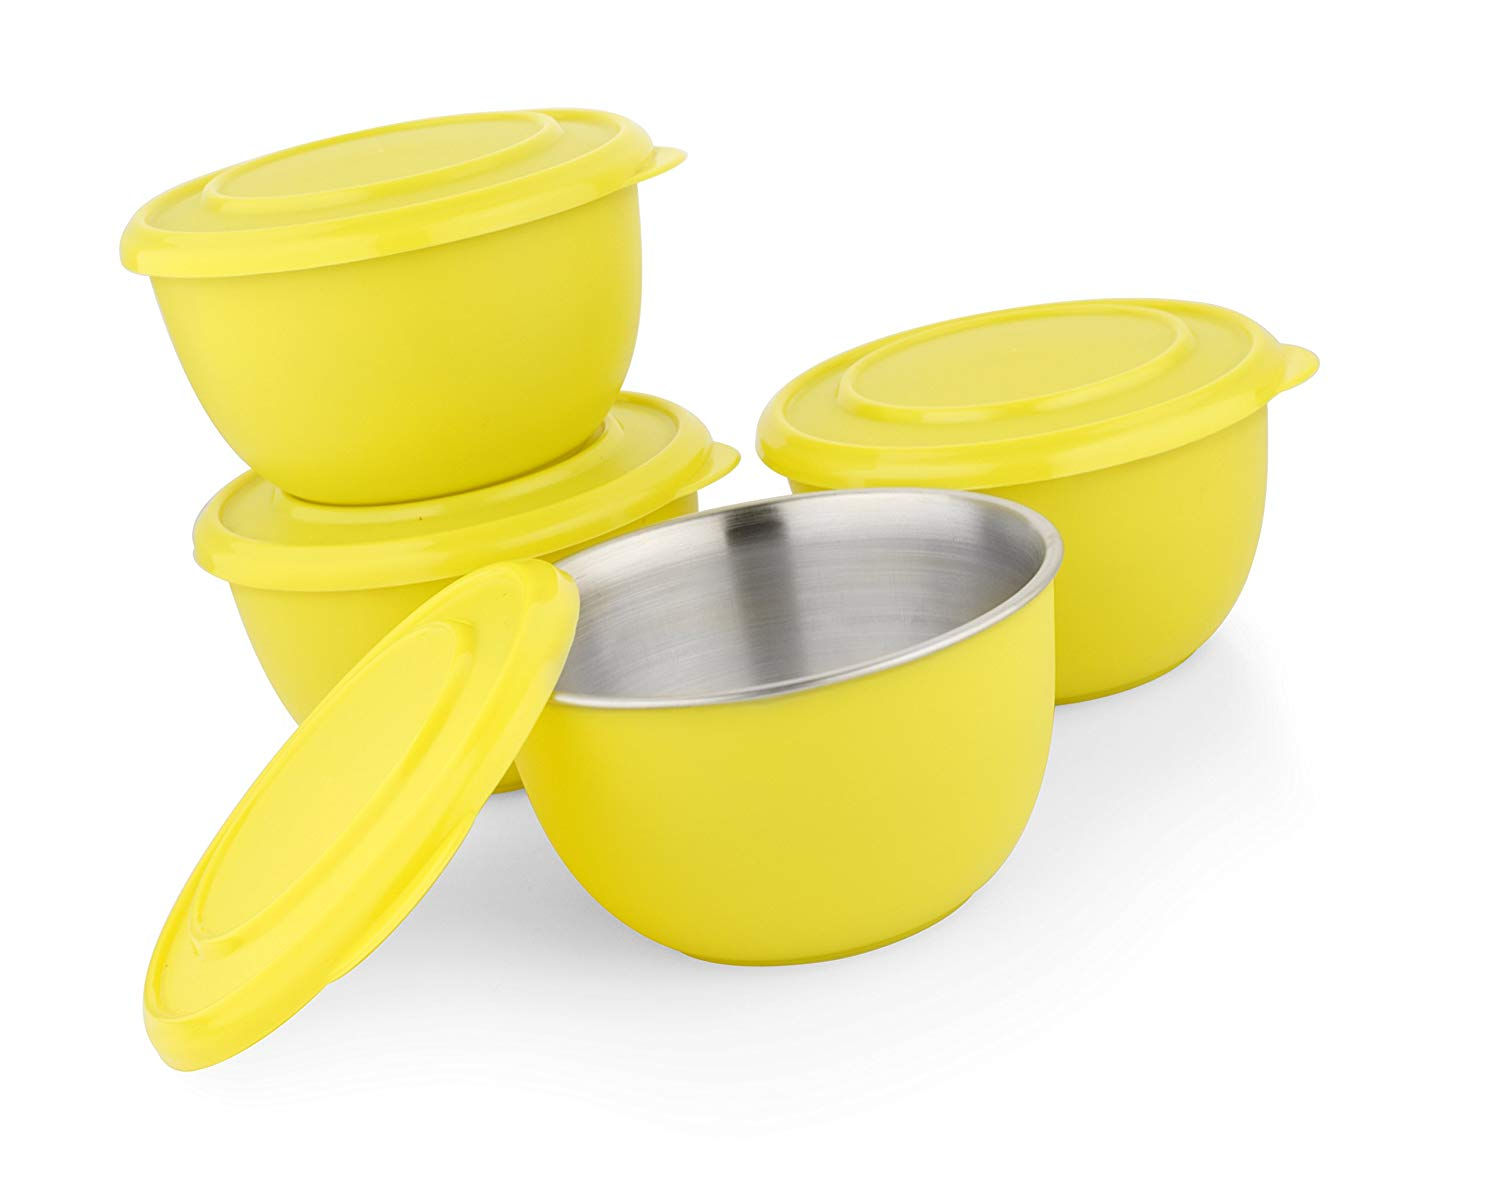 Microwave Safe Stainless Steel Plastic Coated YELLOW Bowl Set of 4  13 cm Each